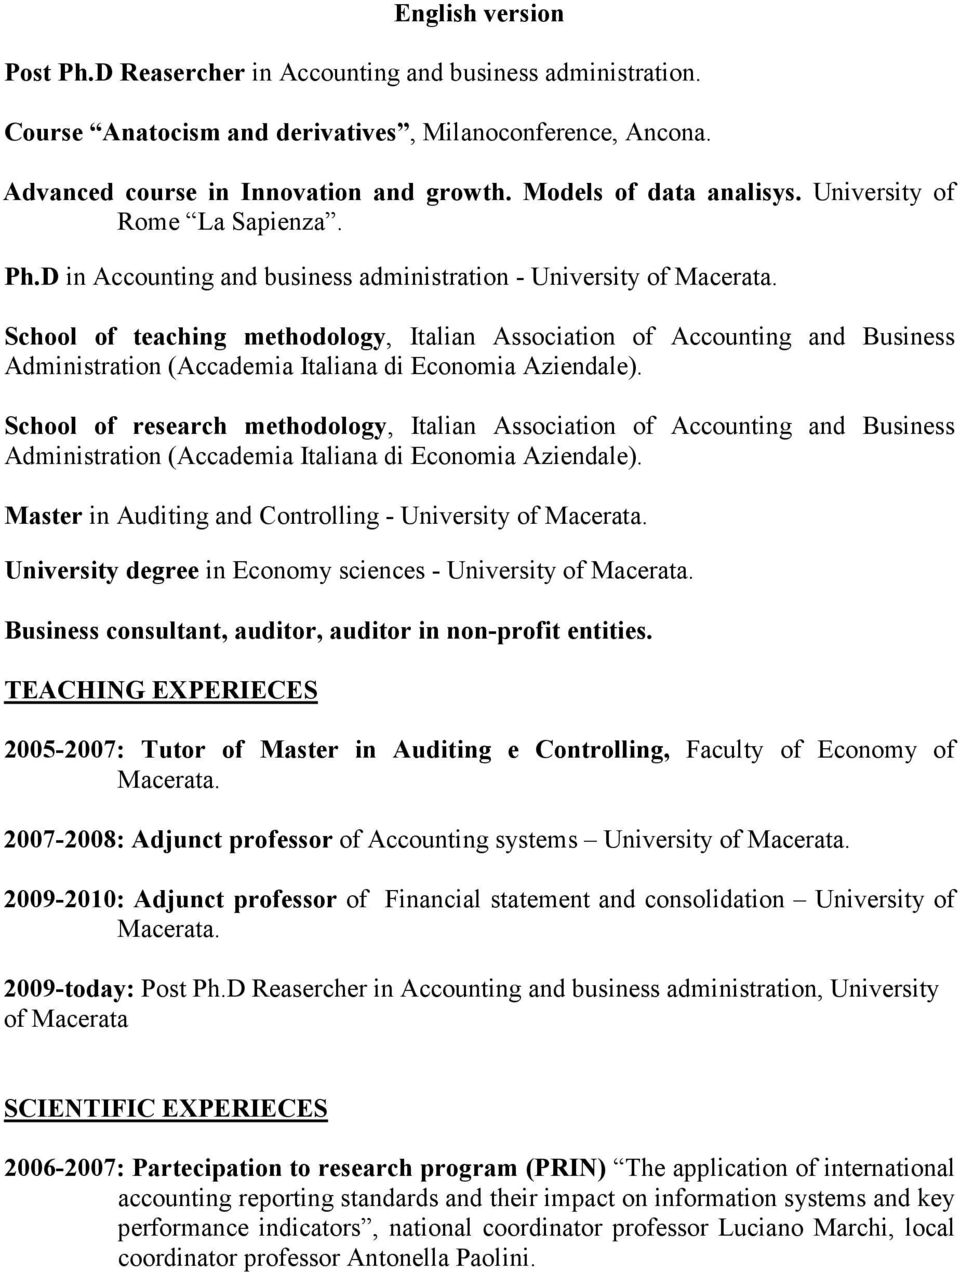 D in Accounting and business administration - University of School of teaching methodology, Italian Association of Accounting and Business Administration (Accademia Italiana di Economia Aziendale).